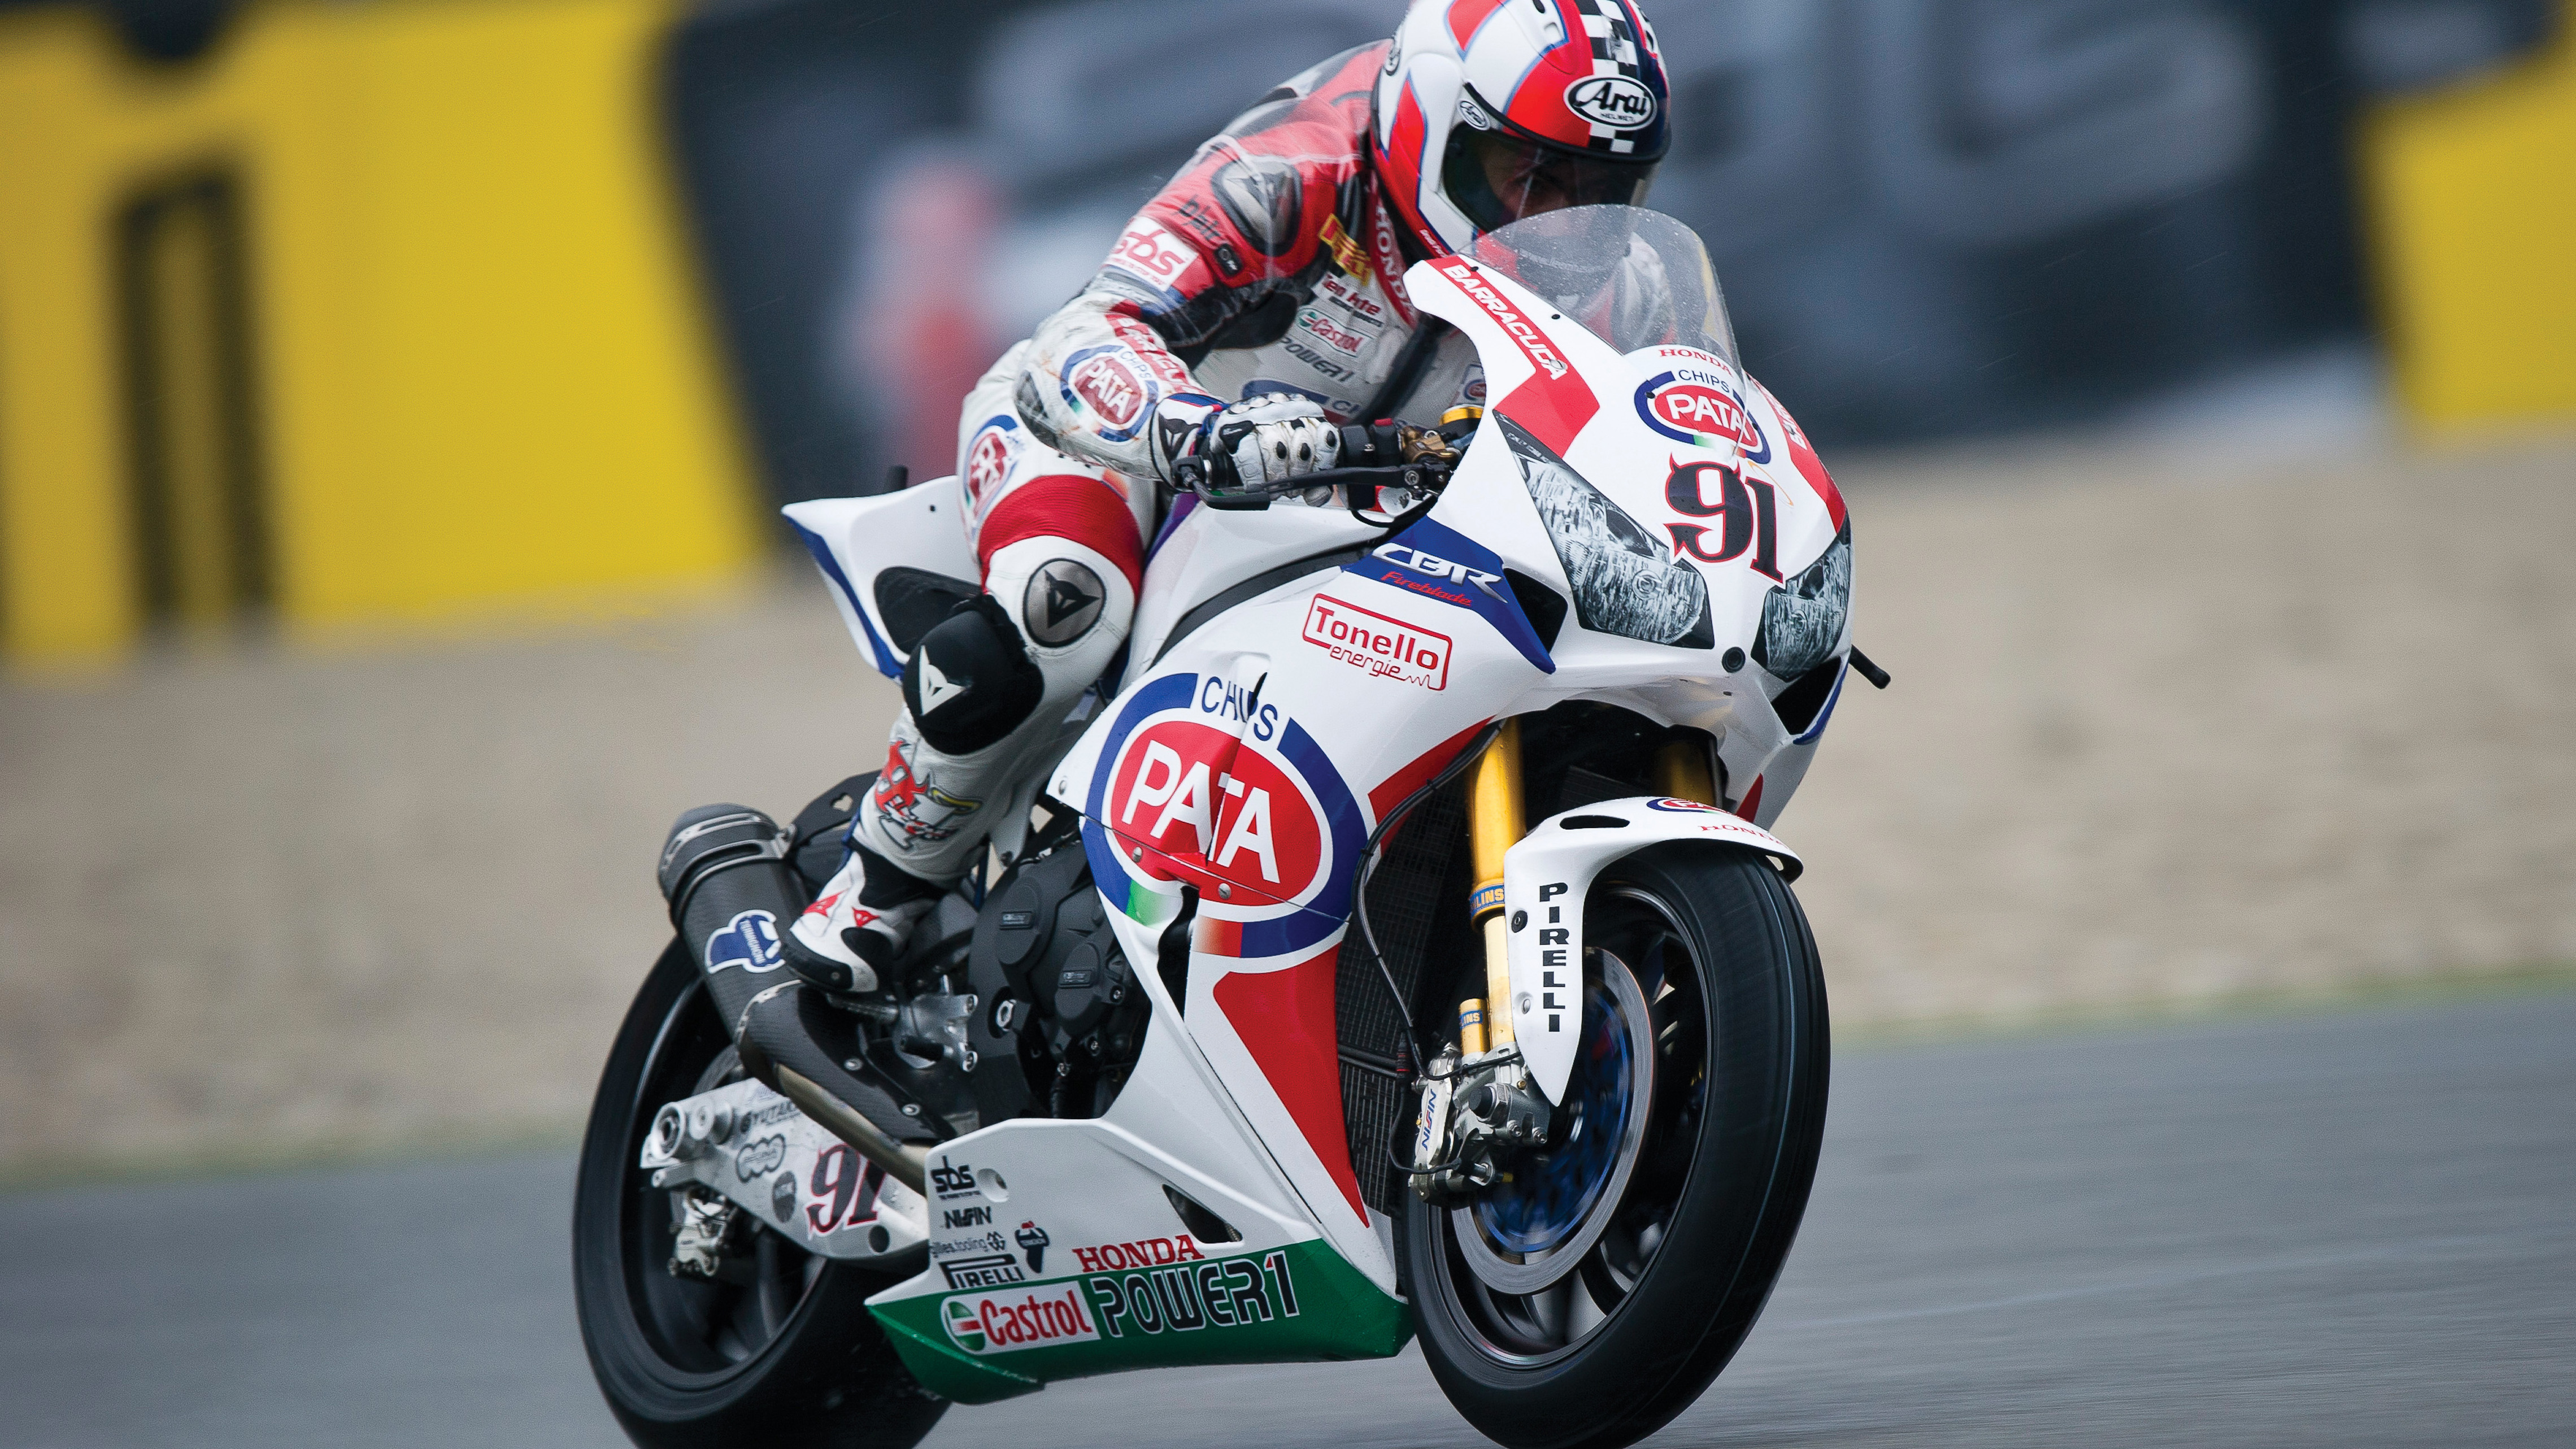 Honda_World_Superbikes_2013.jpg